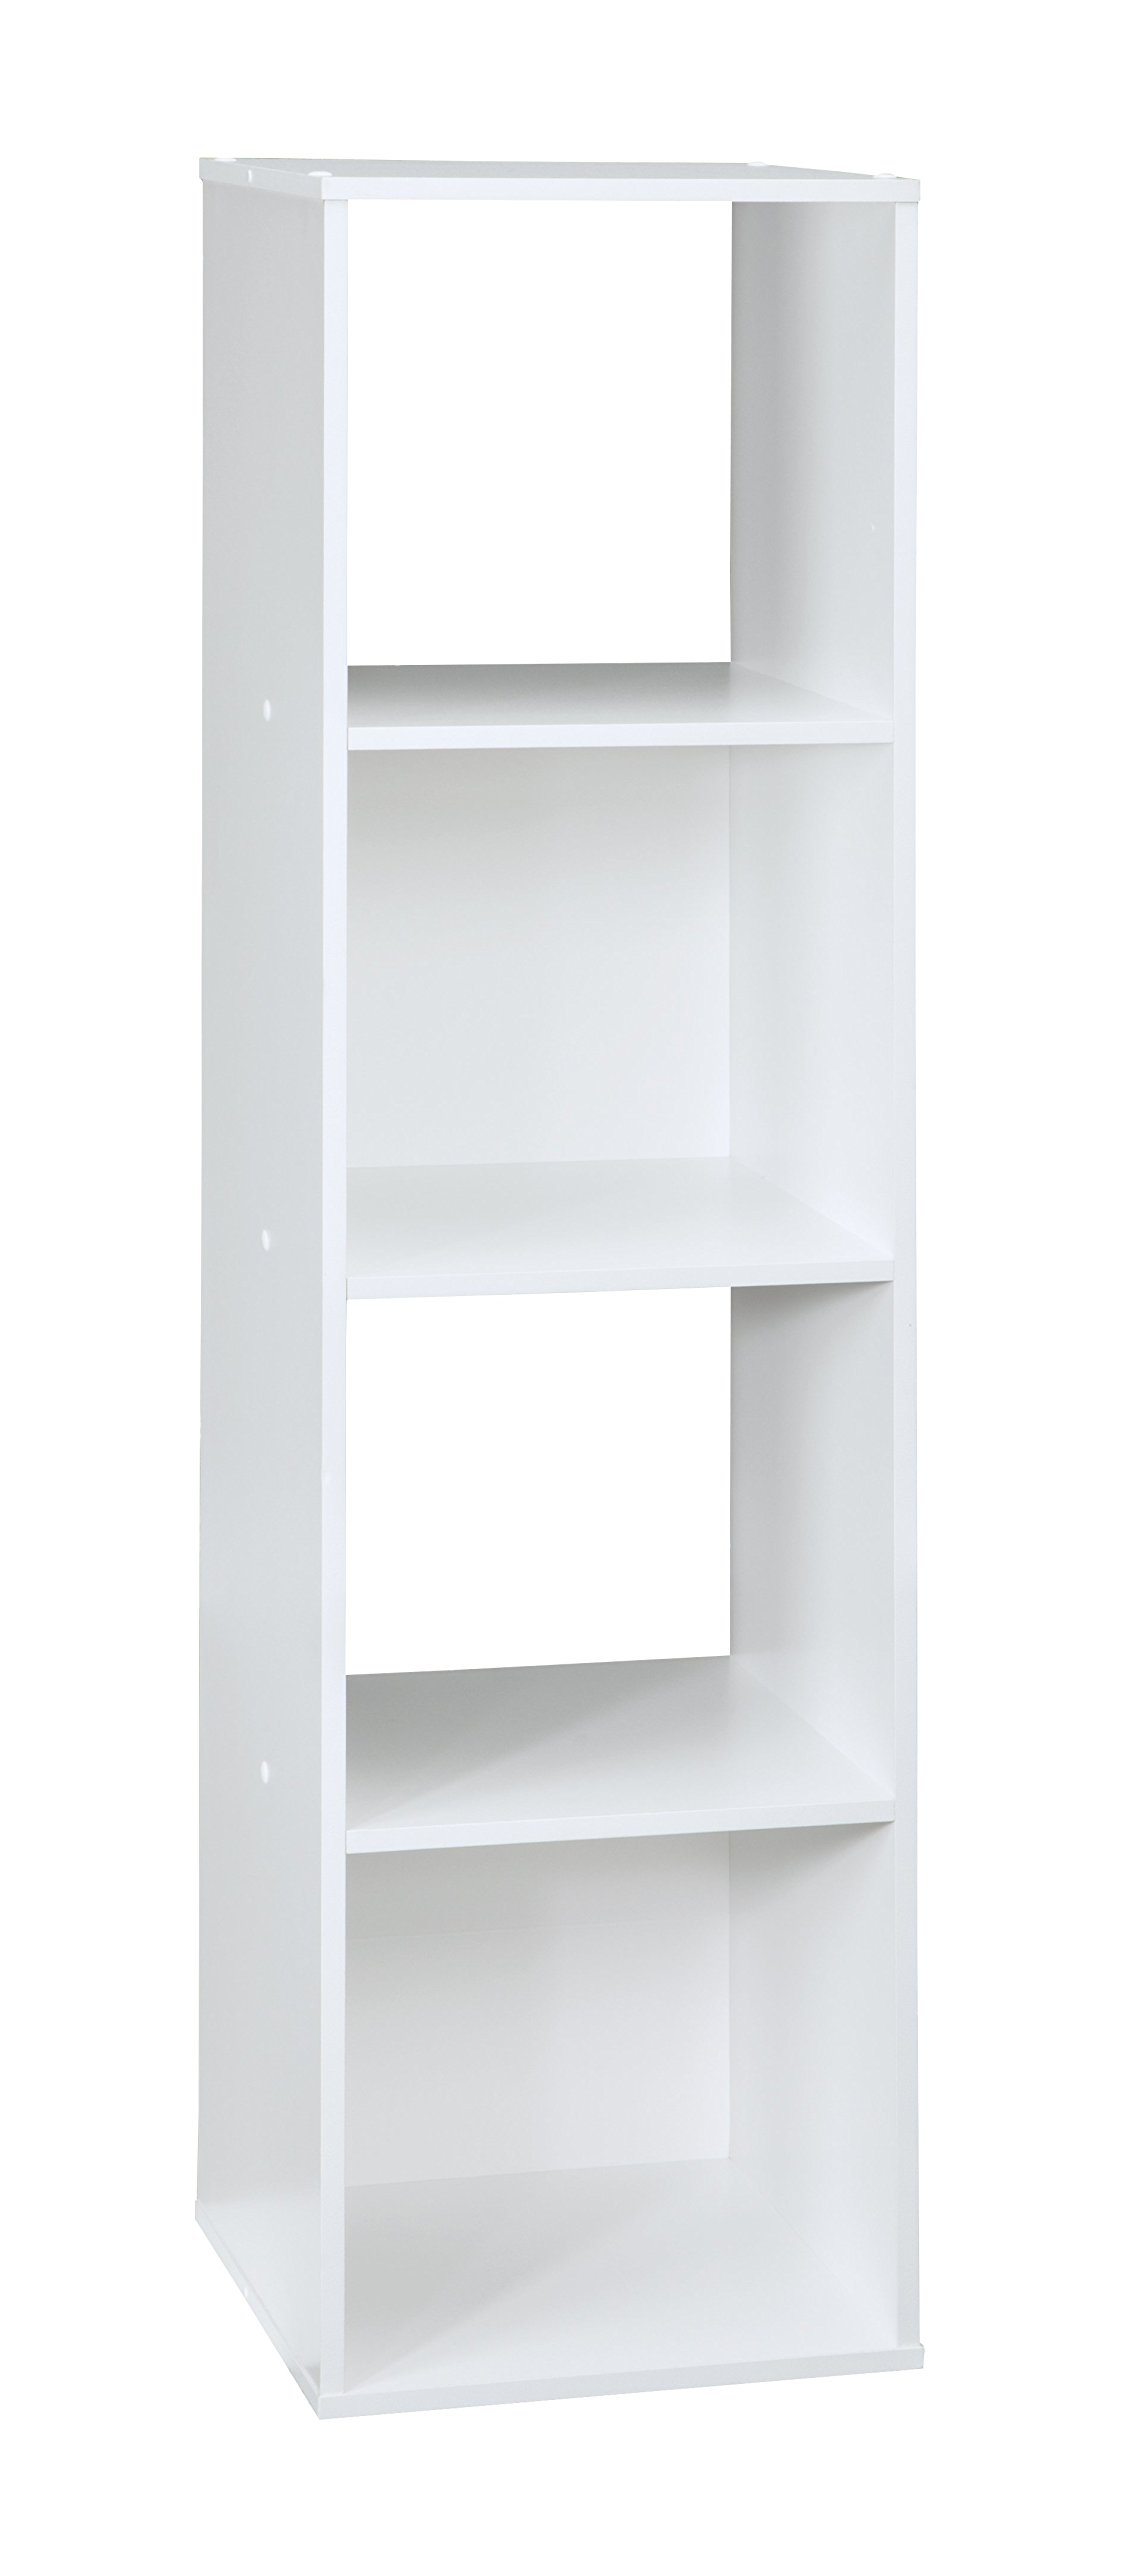 ClosetMaid 1029 Cubeicals Organizer, 4-Cube, White